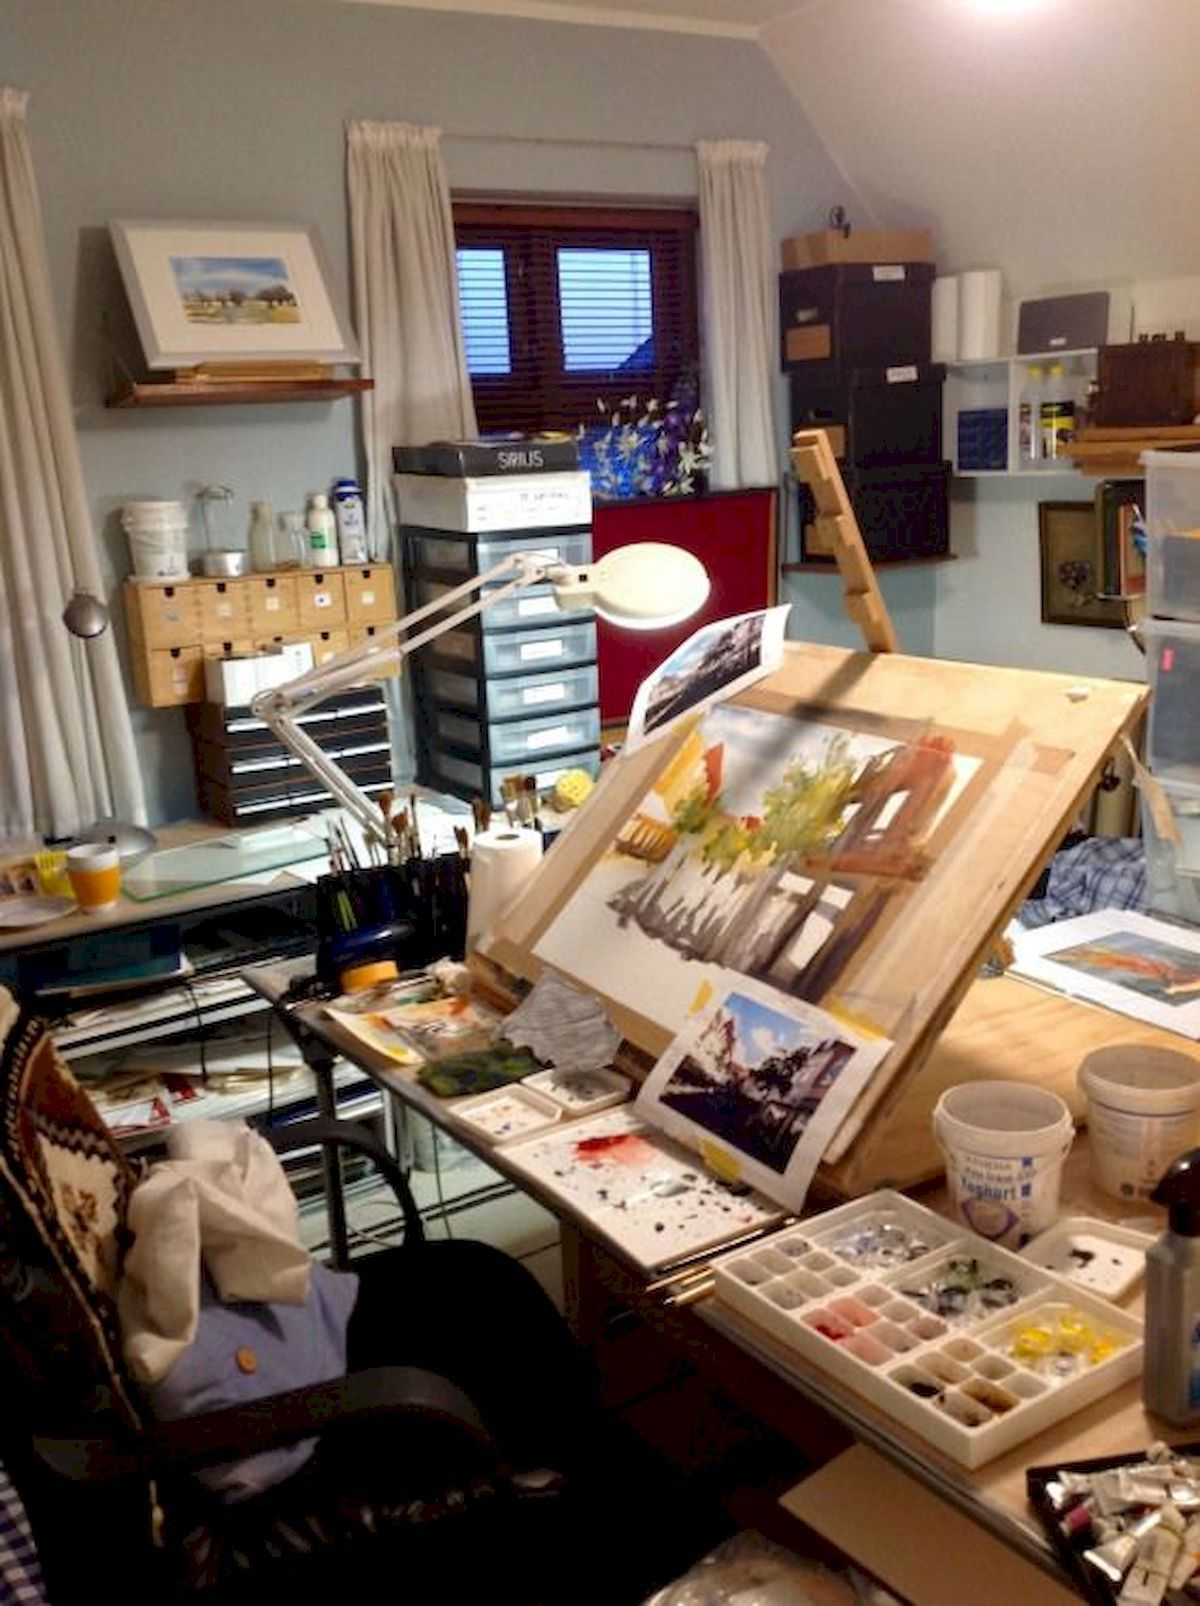 Gorgeous 58 Fantastic Art Studio Organization Ideas And Decor Source Https Artmyideas Com 2019 01 30 58 F Art Studio Room Art Studio Decor Art Studio Space